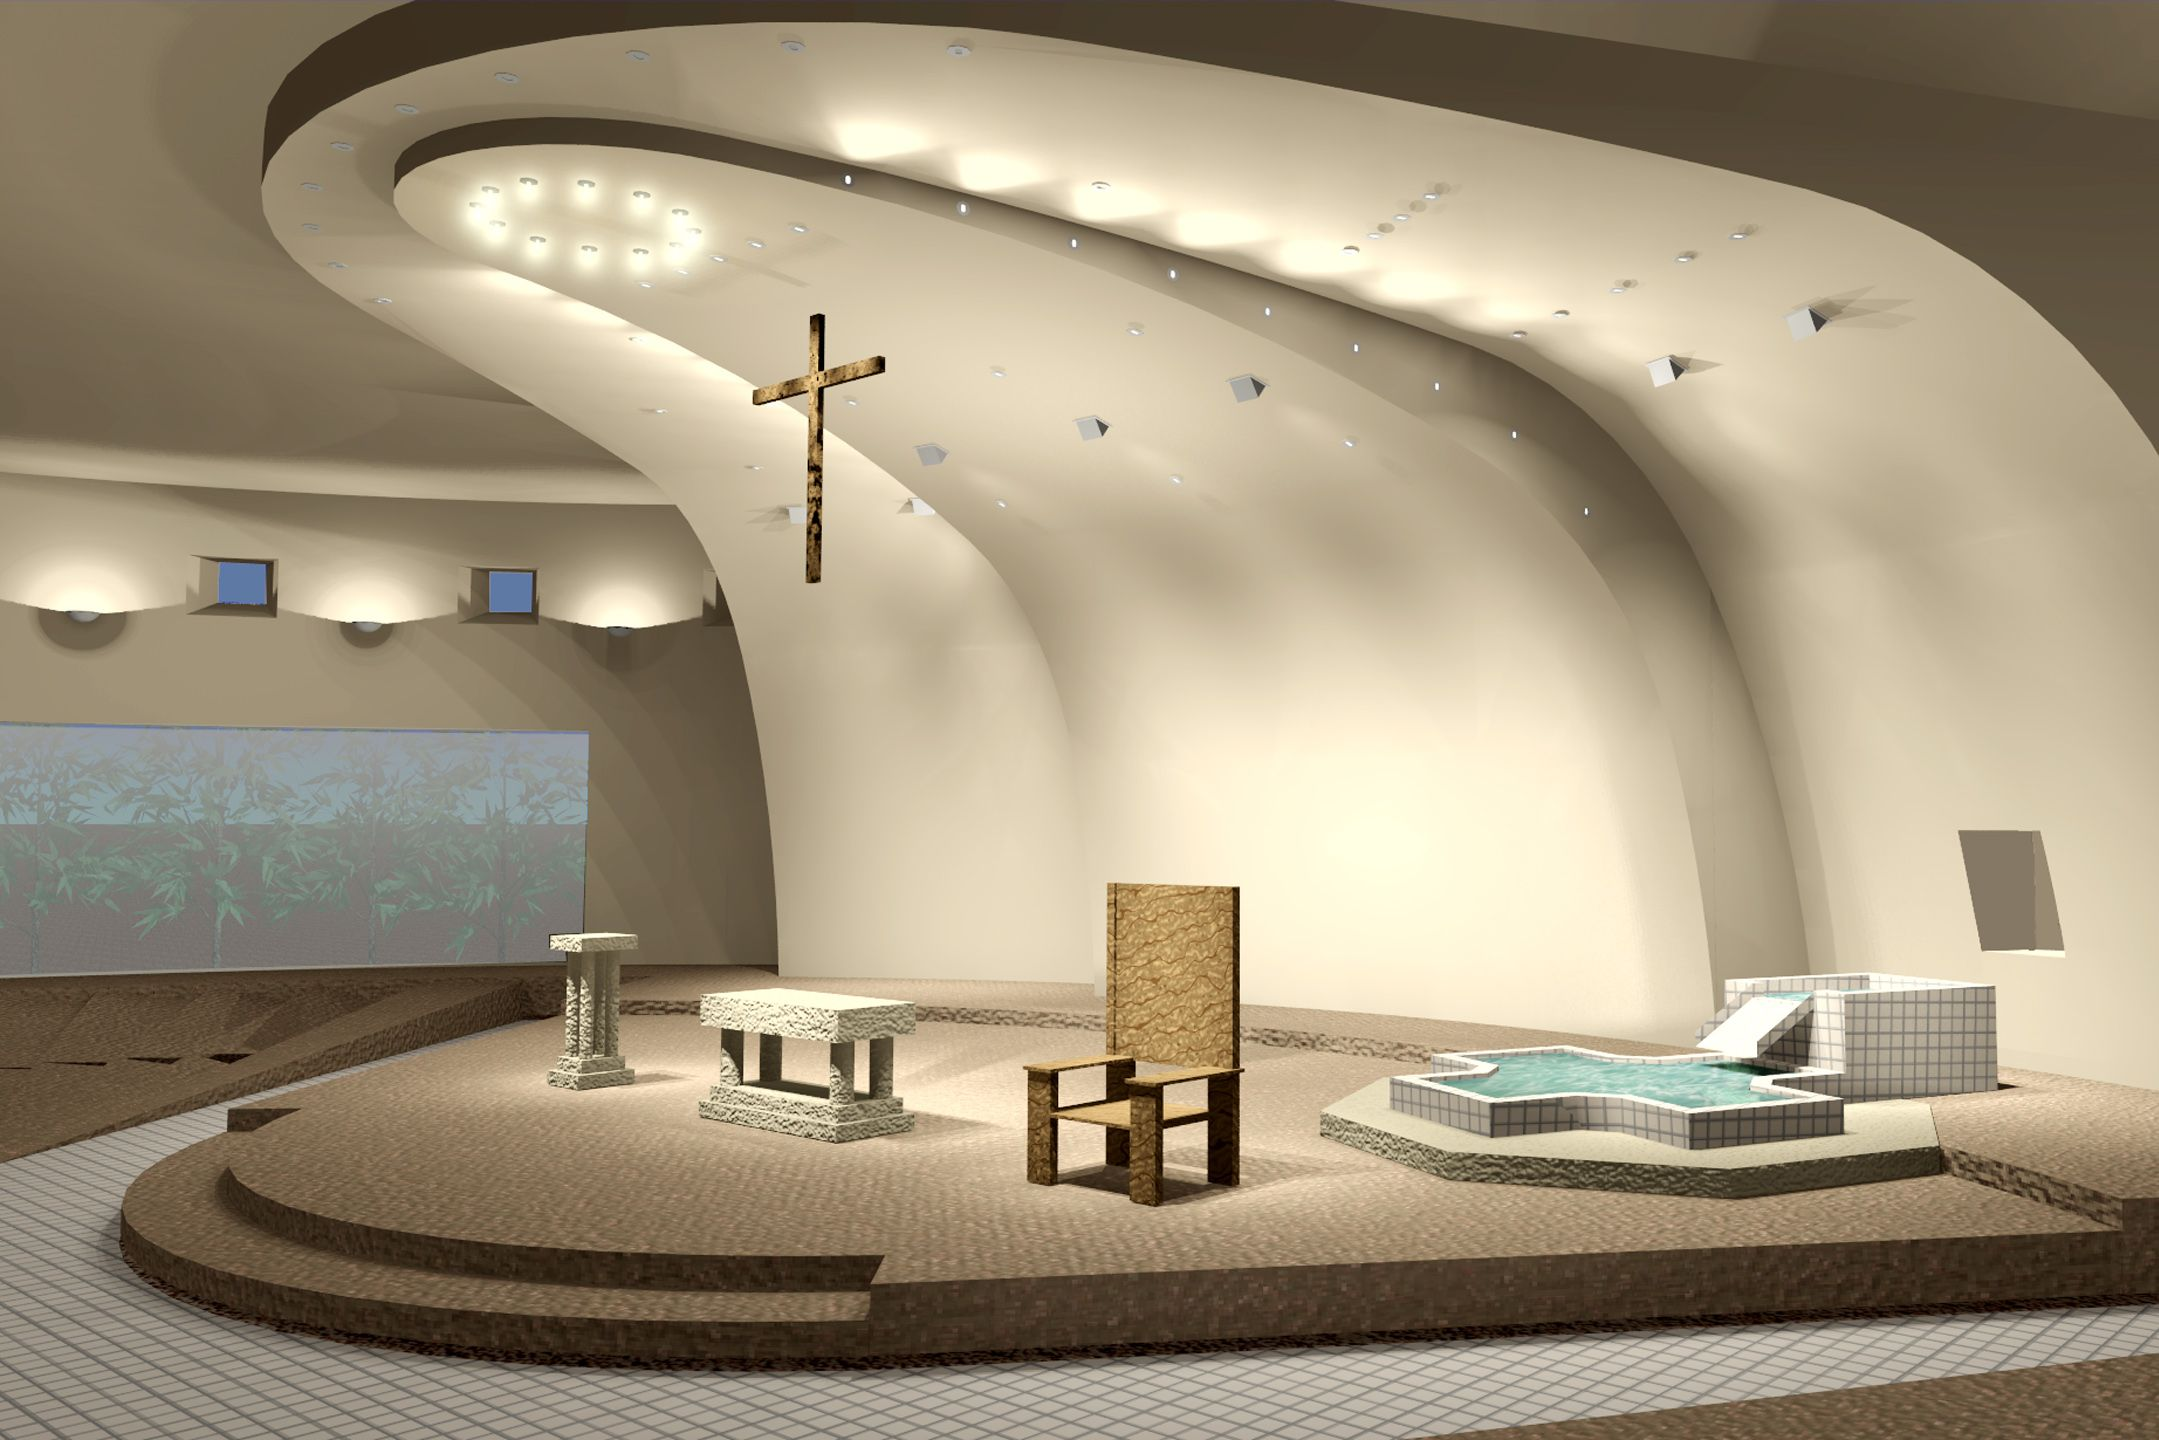 18 Best Photos Of Contemporary Church Interior Design Small Anese